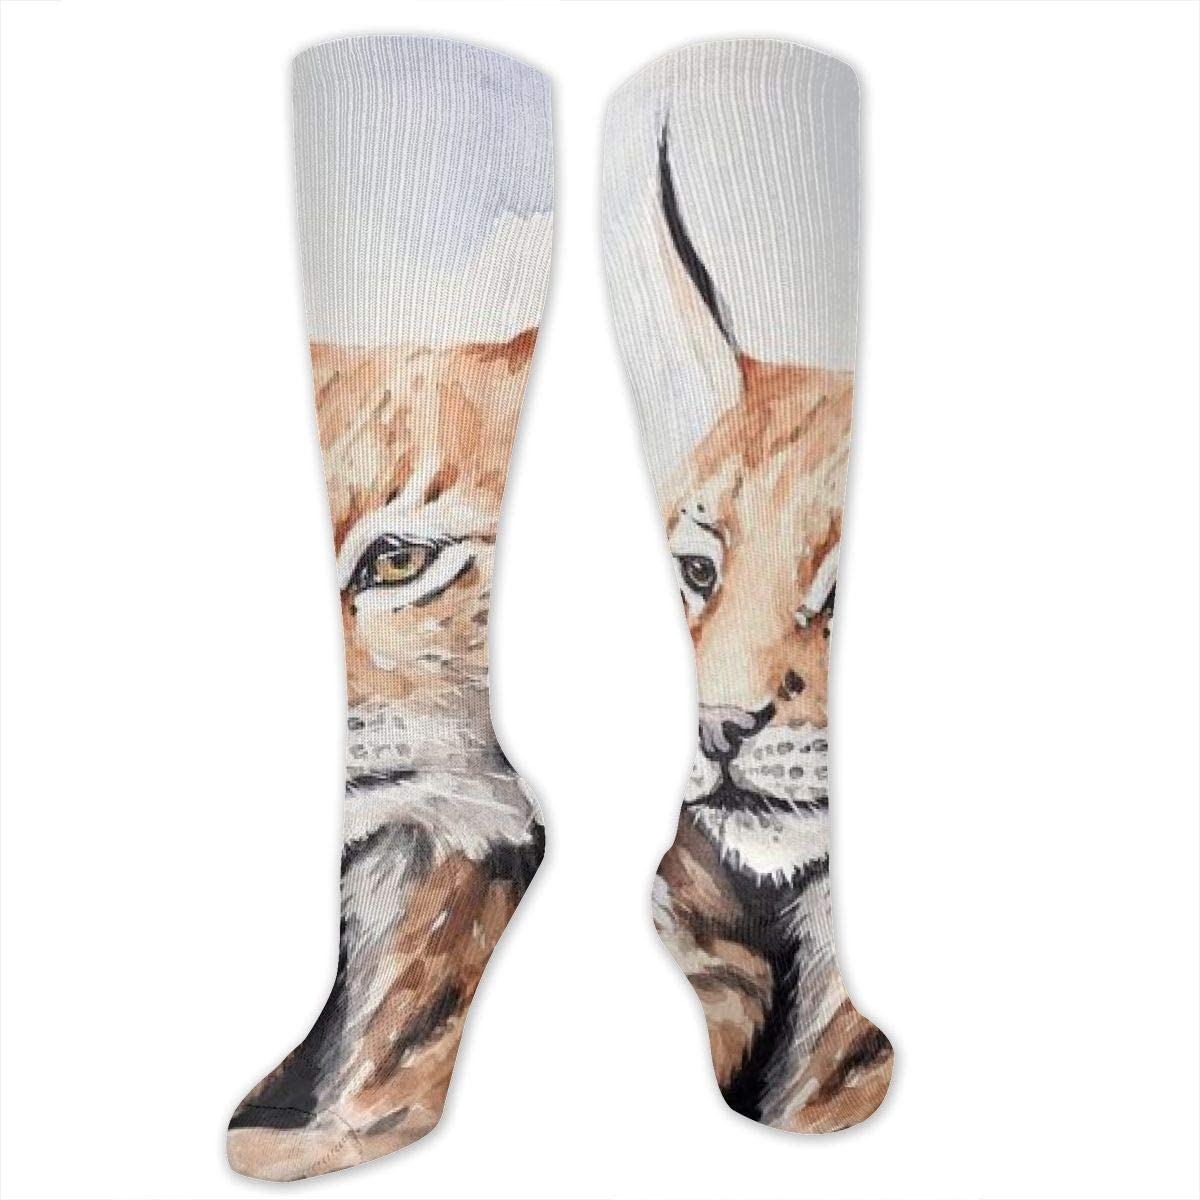 Lacrosse Hockey Rugby Socks White Volleyball Baseball Feature Personal Soccer Socks For Soccer Softball